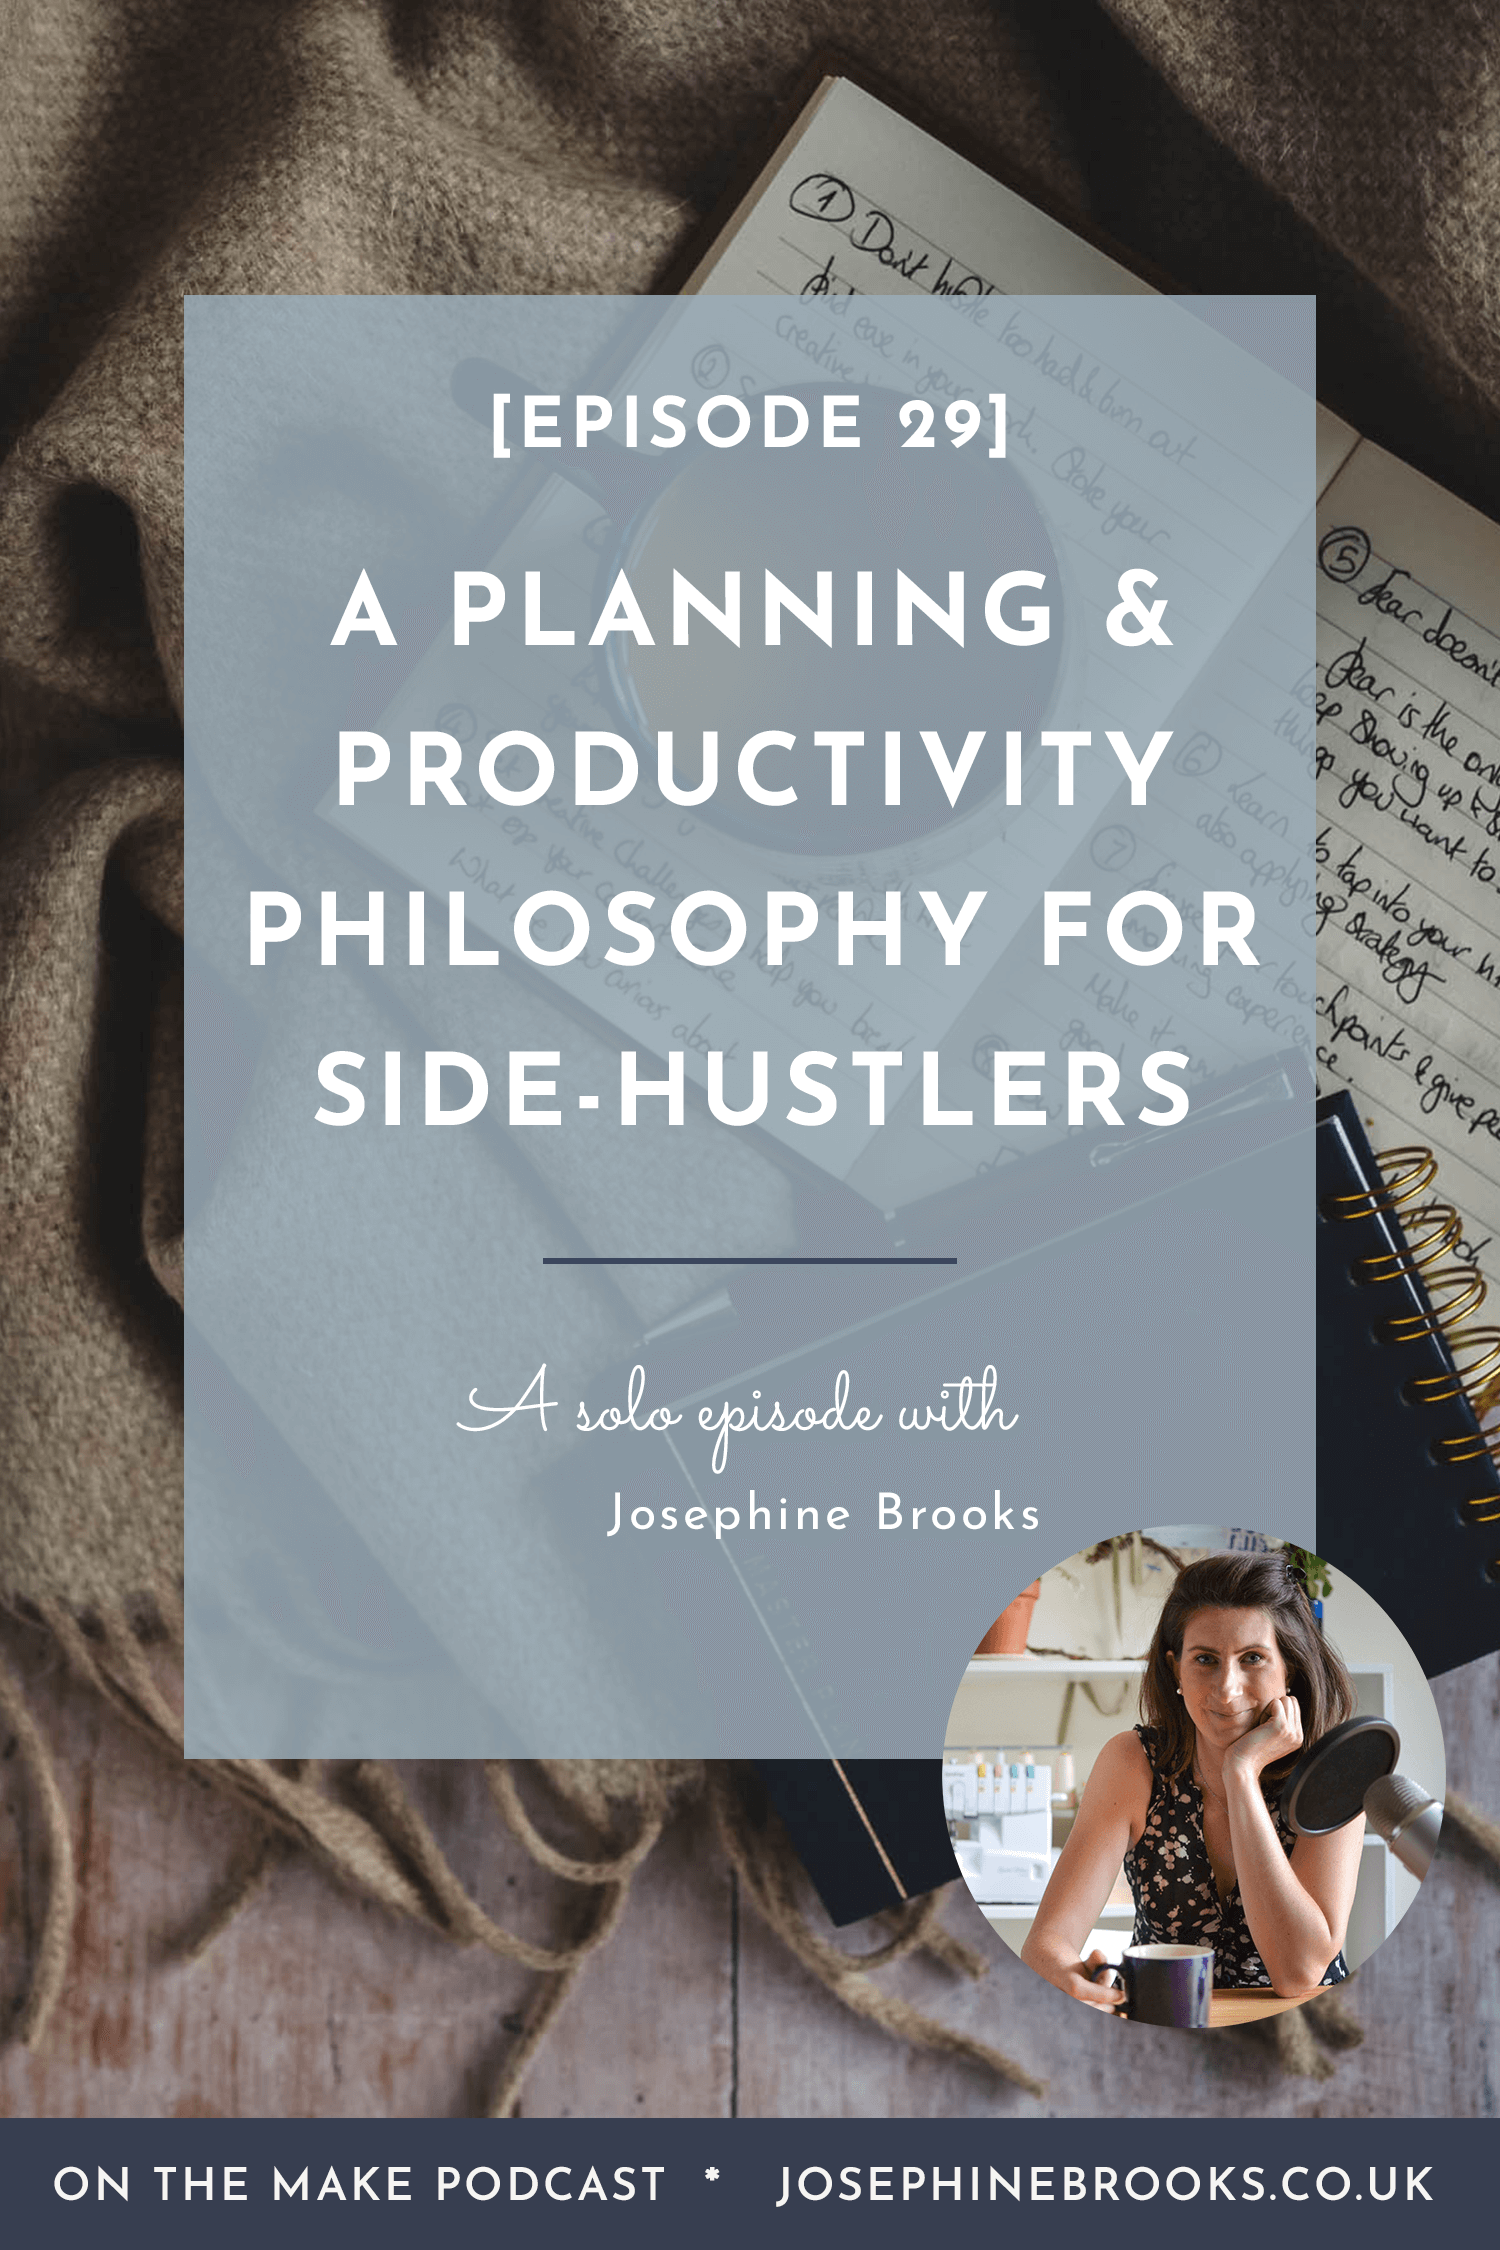 A Planning & Productivity philosophy for side-hustlers Episode 29 of On The Make podcast with Josephine Brooks